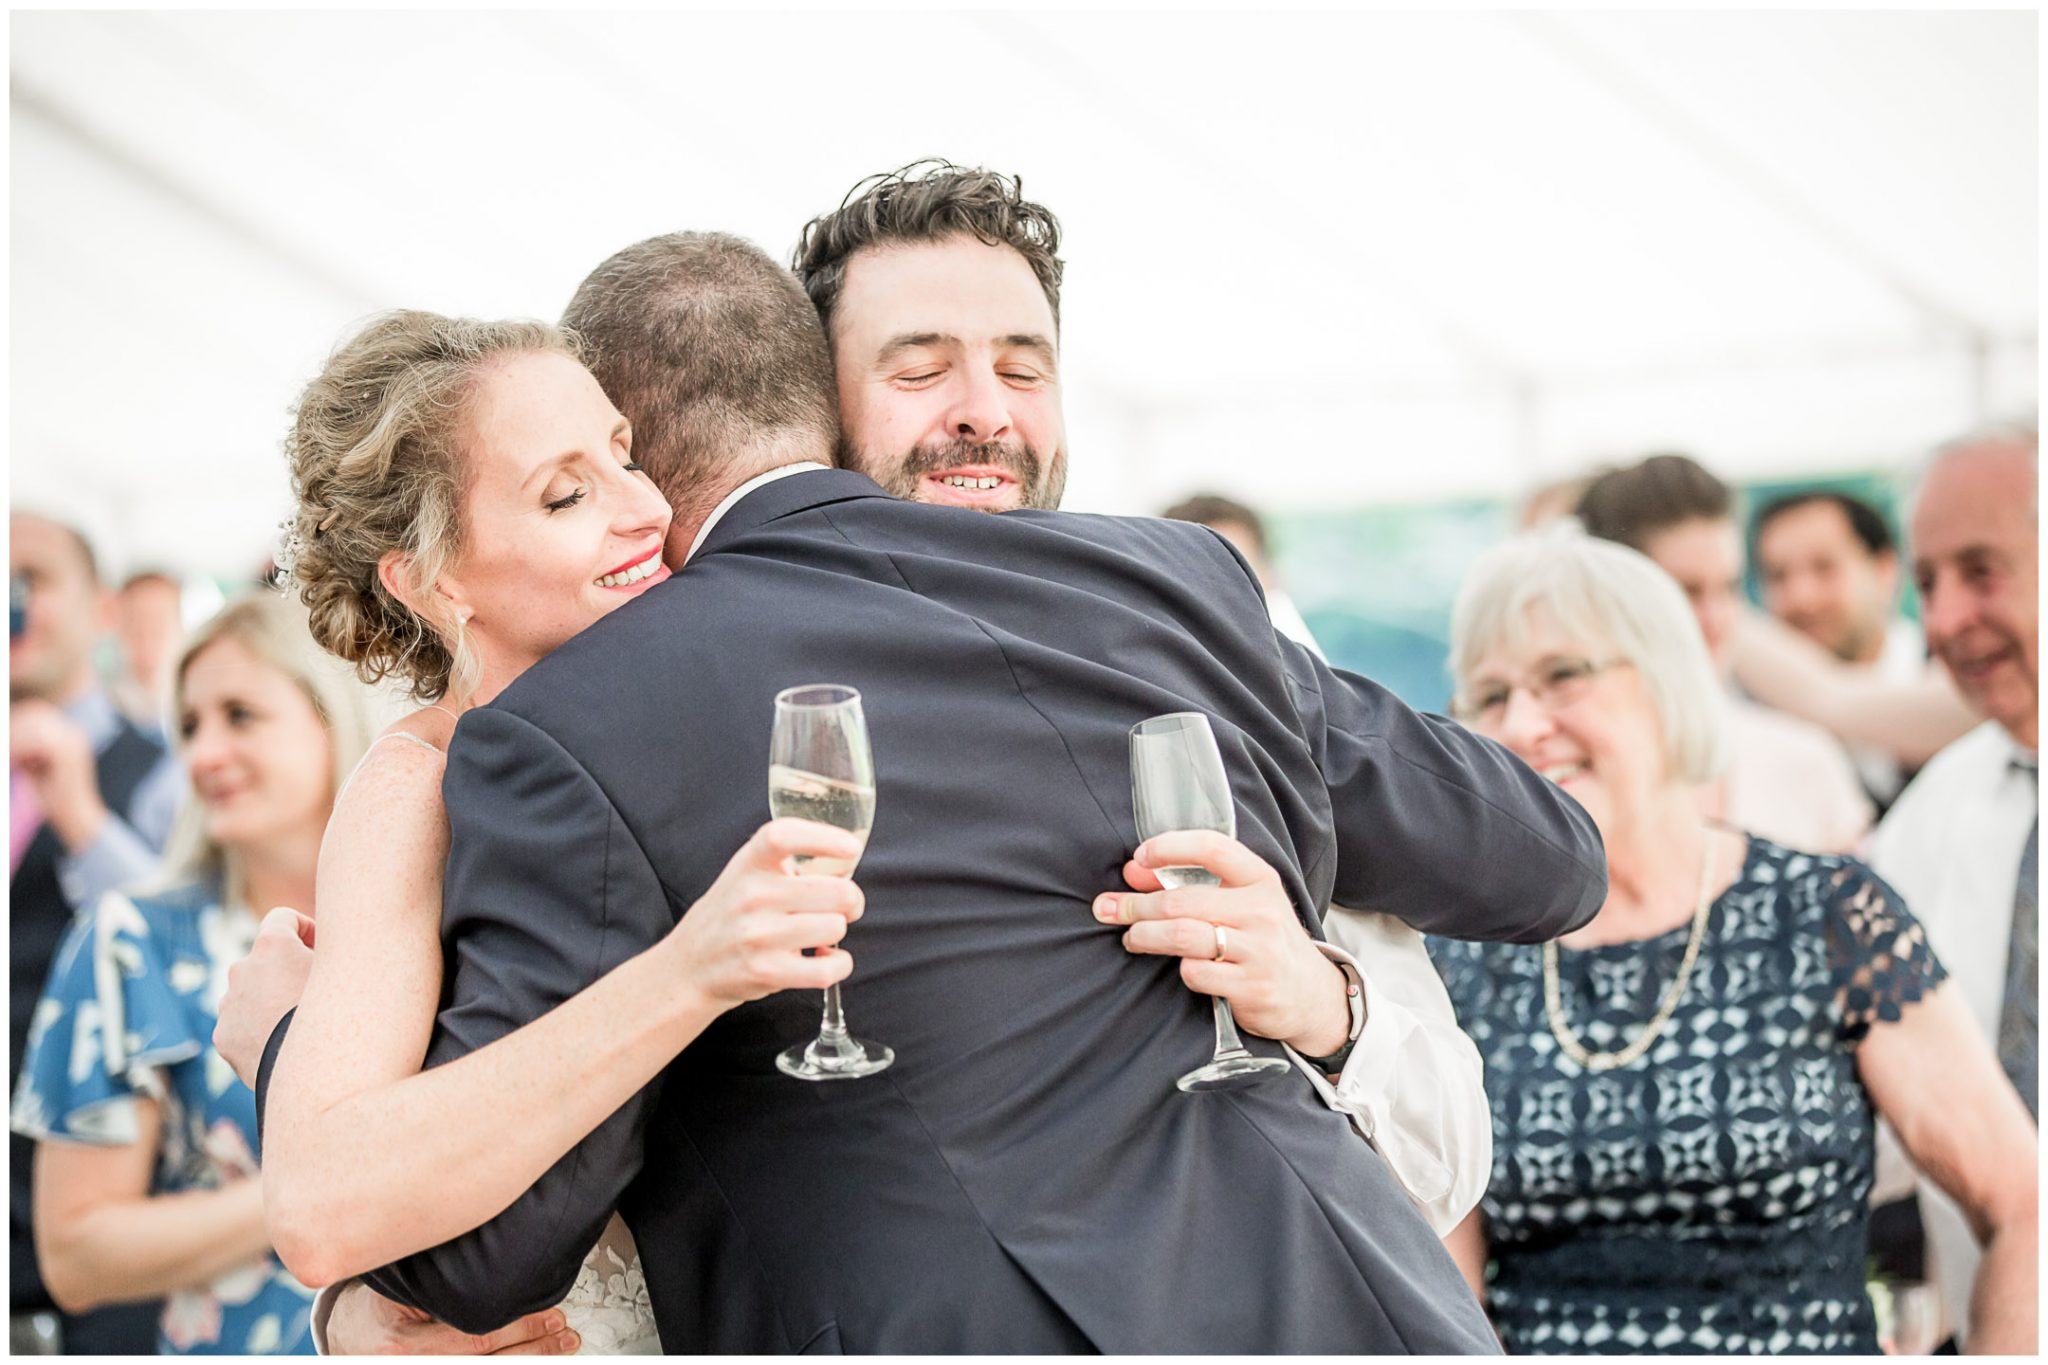 The best man hugs the bride and groom after giving his speech